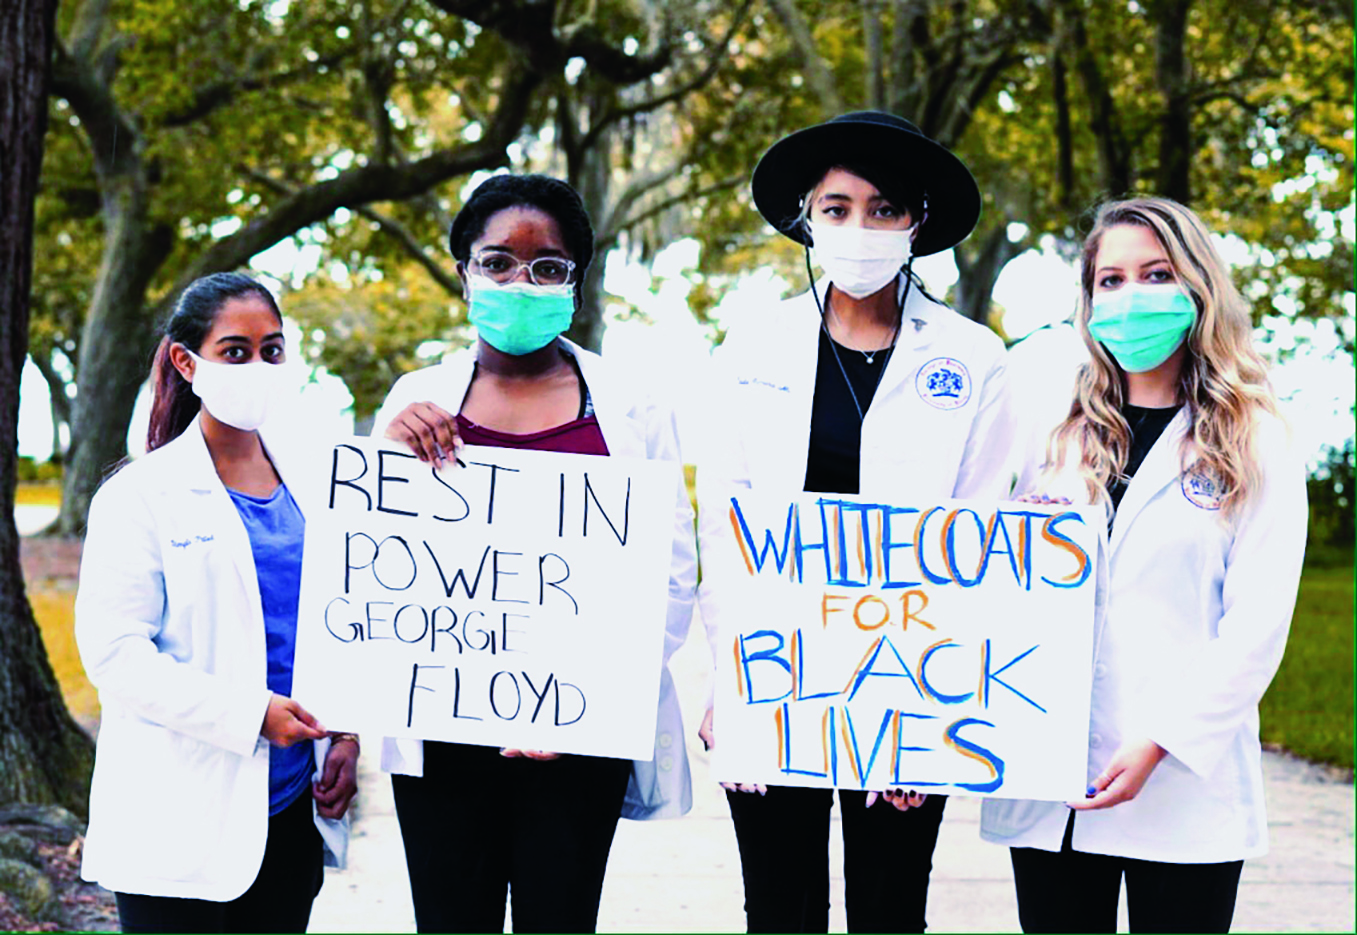 Jacksonville pharmacy students Dimple Patel, Moya Reid, Jade Nanan and Nicole Rossi participated in the White Coats for Black Lives event.